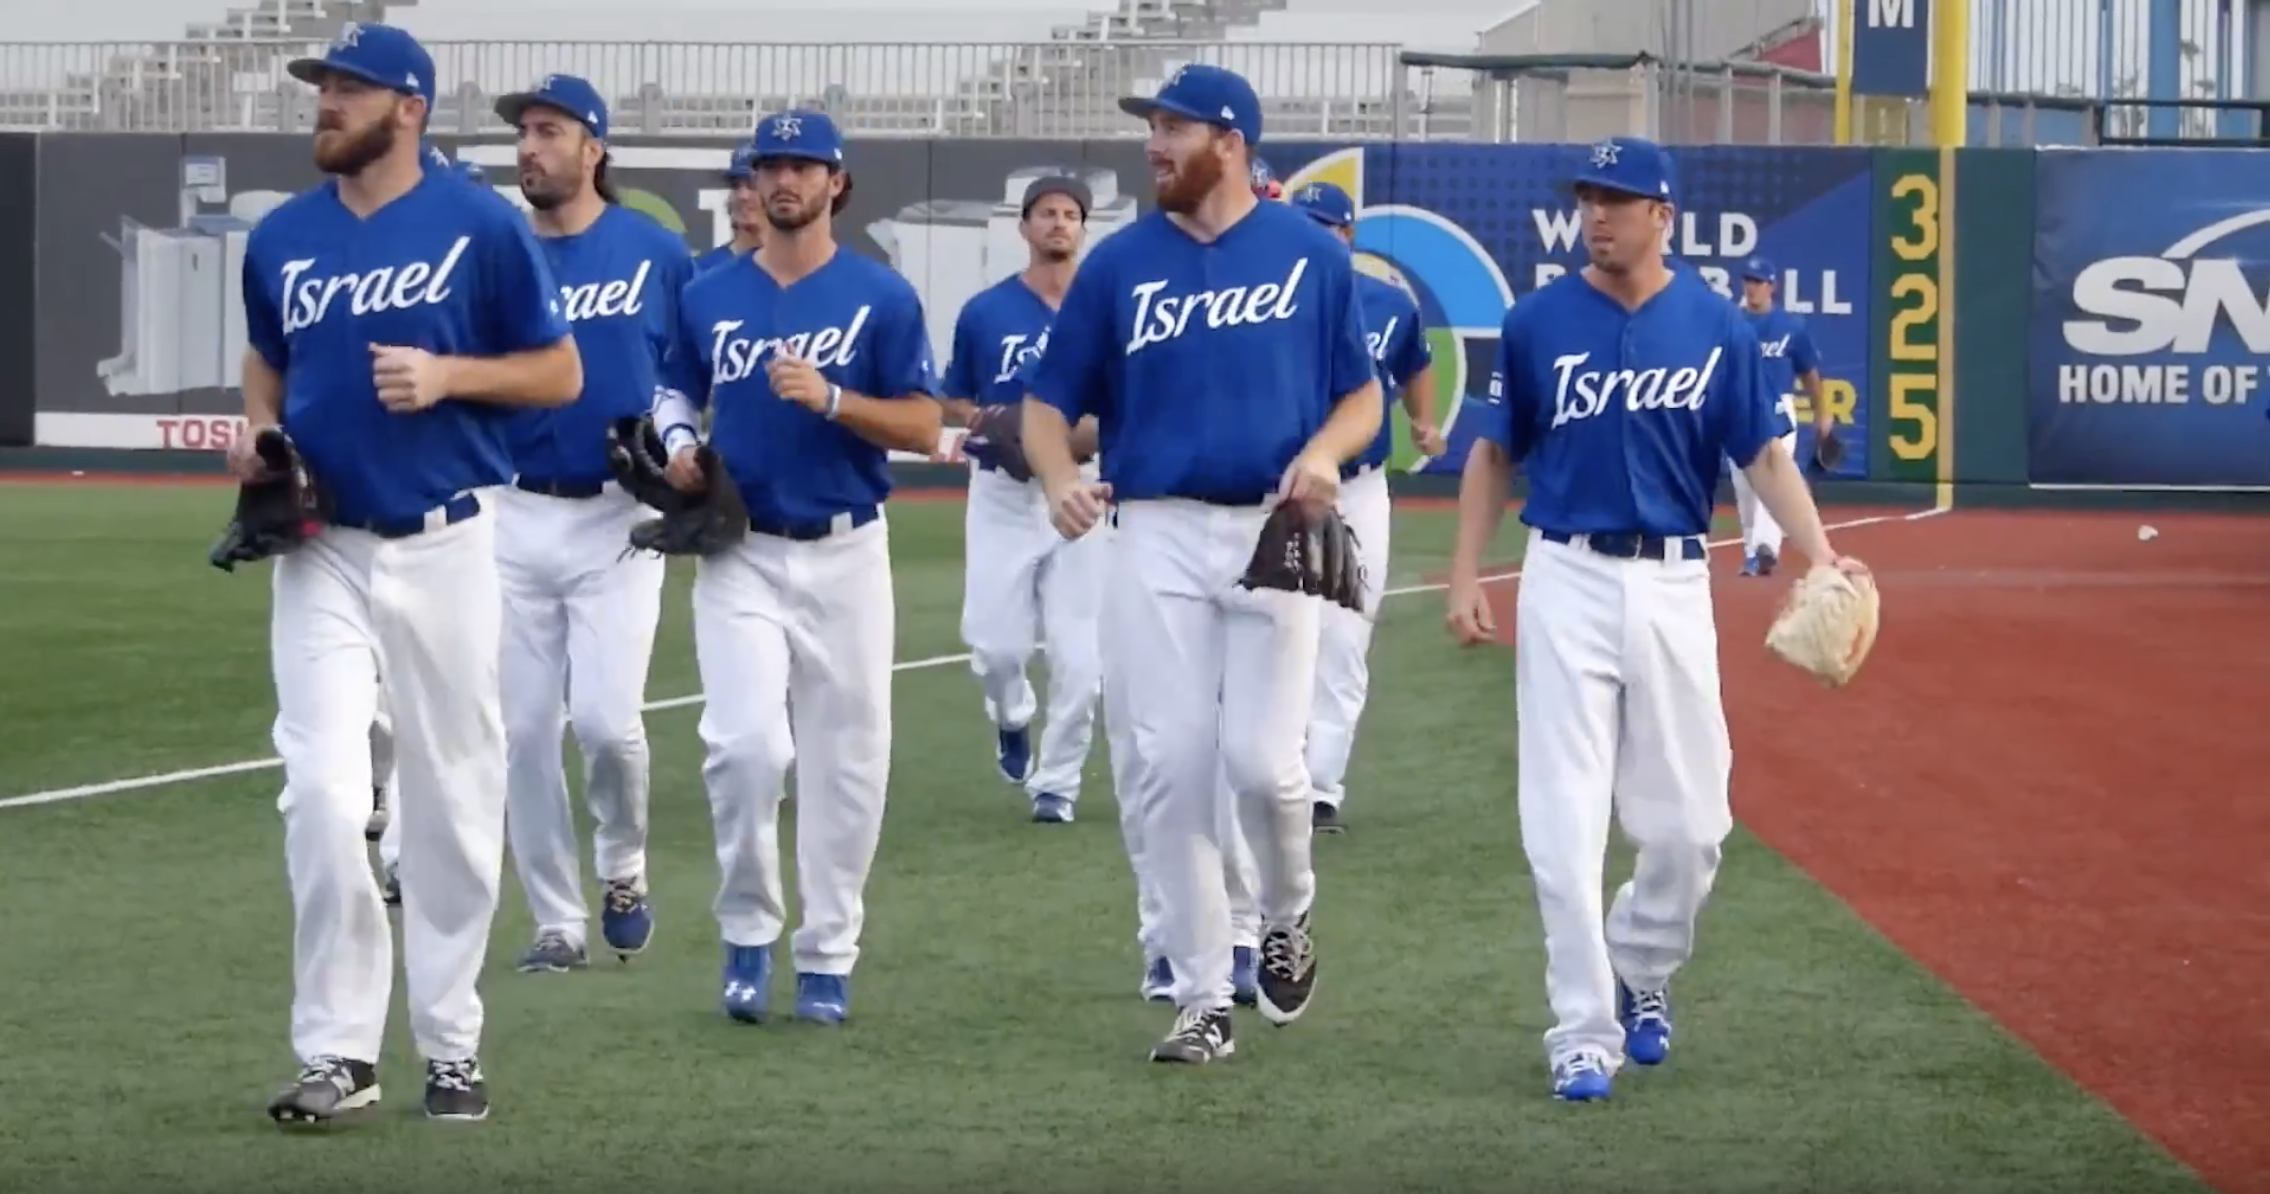 """Heading Home: The Tale of Team Israel"" (Courtesy photo)"